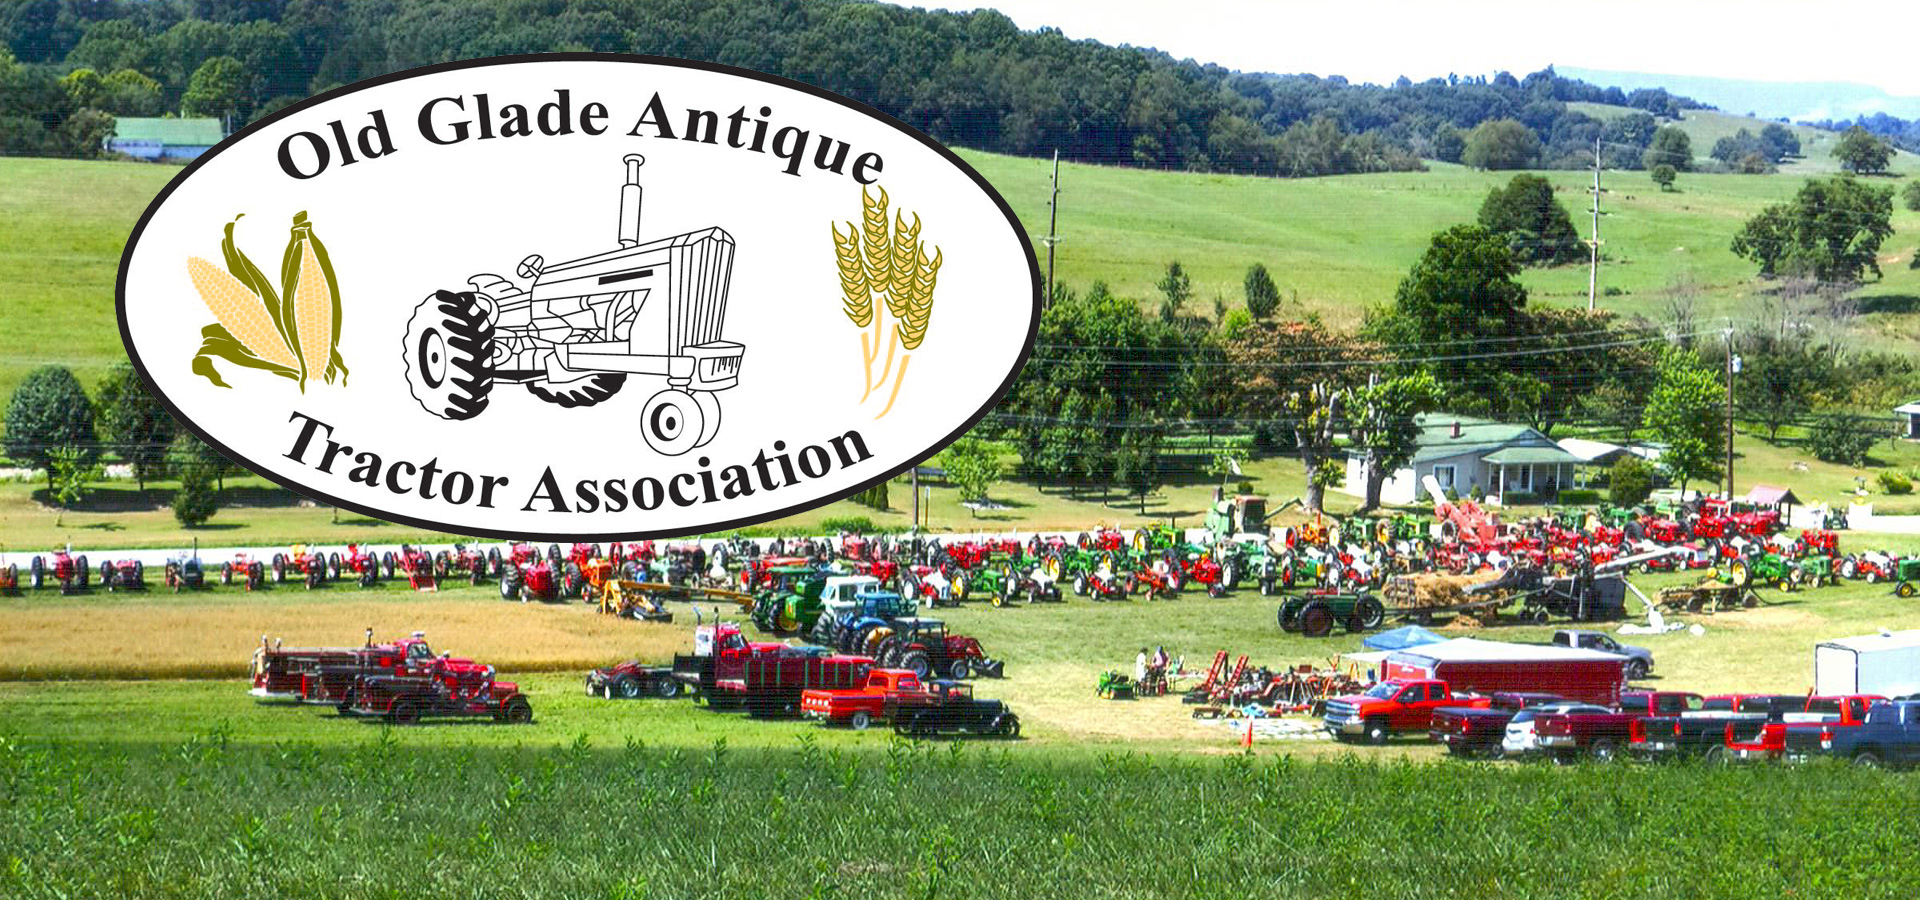 Old Glade Antique Tractor Association